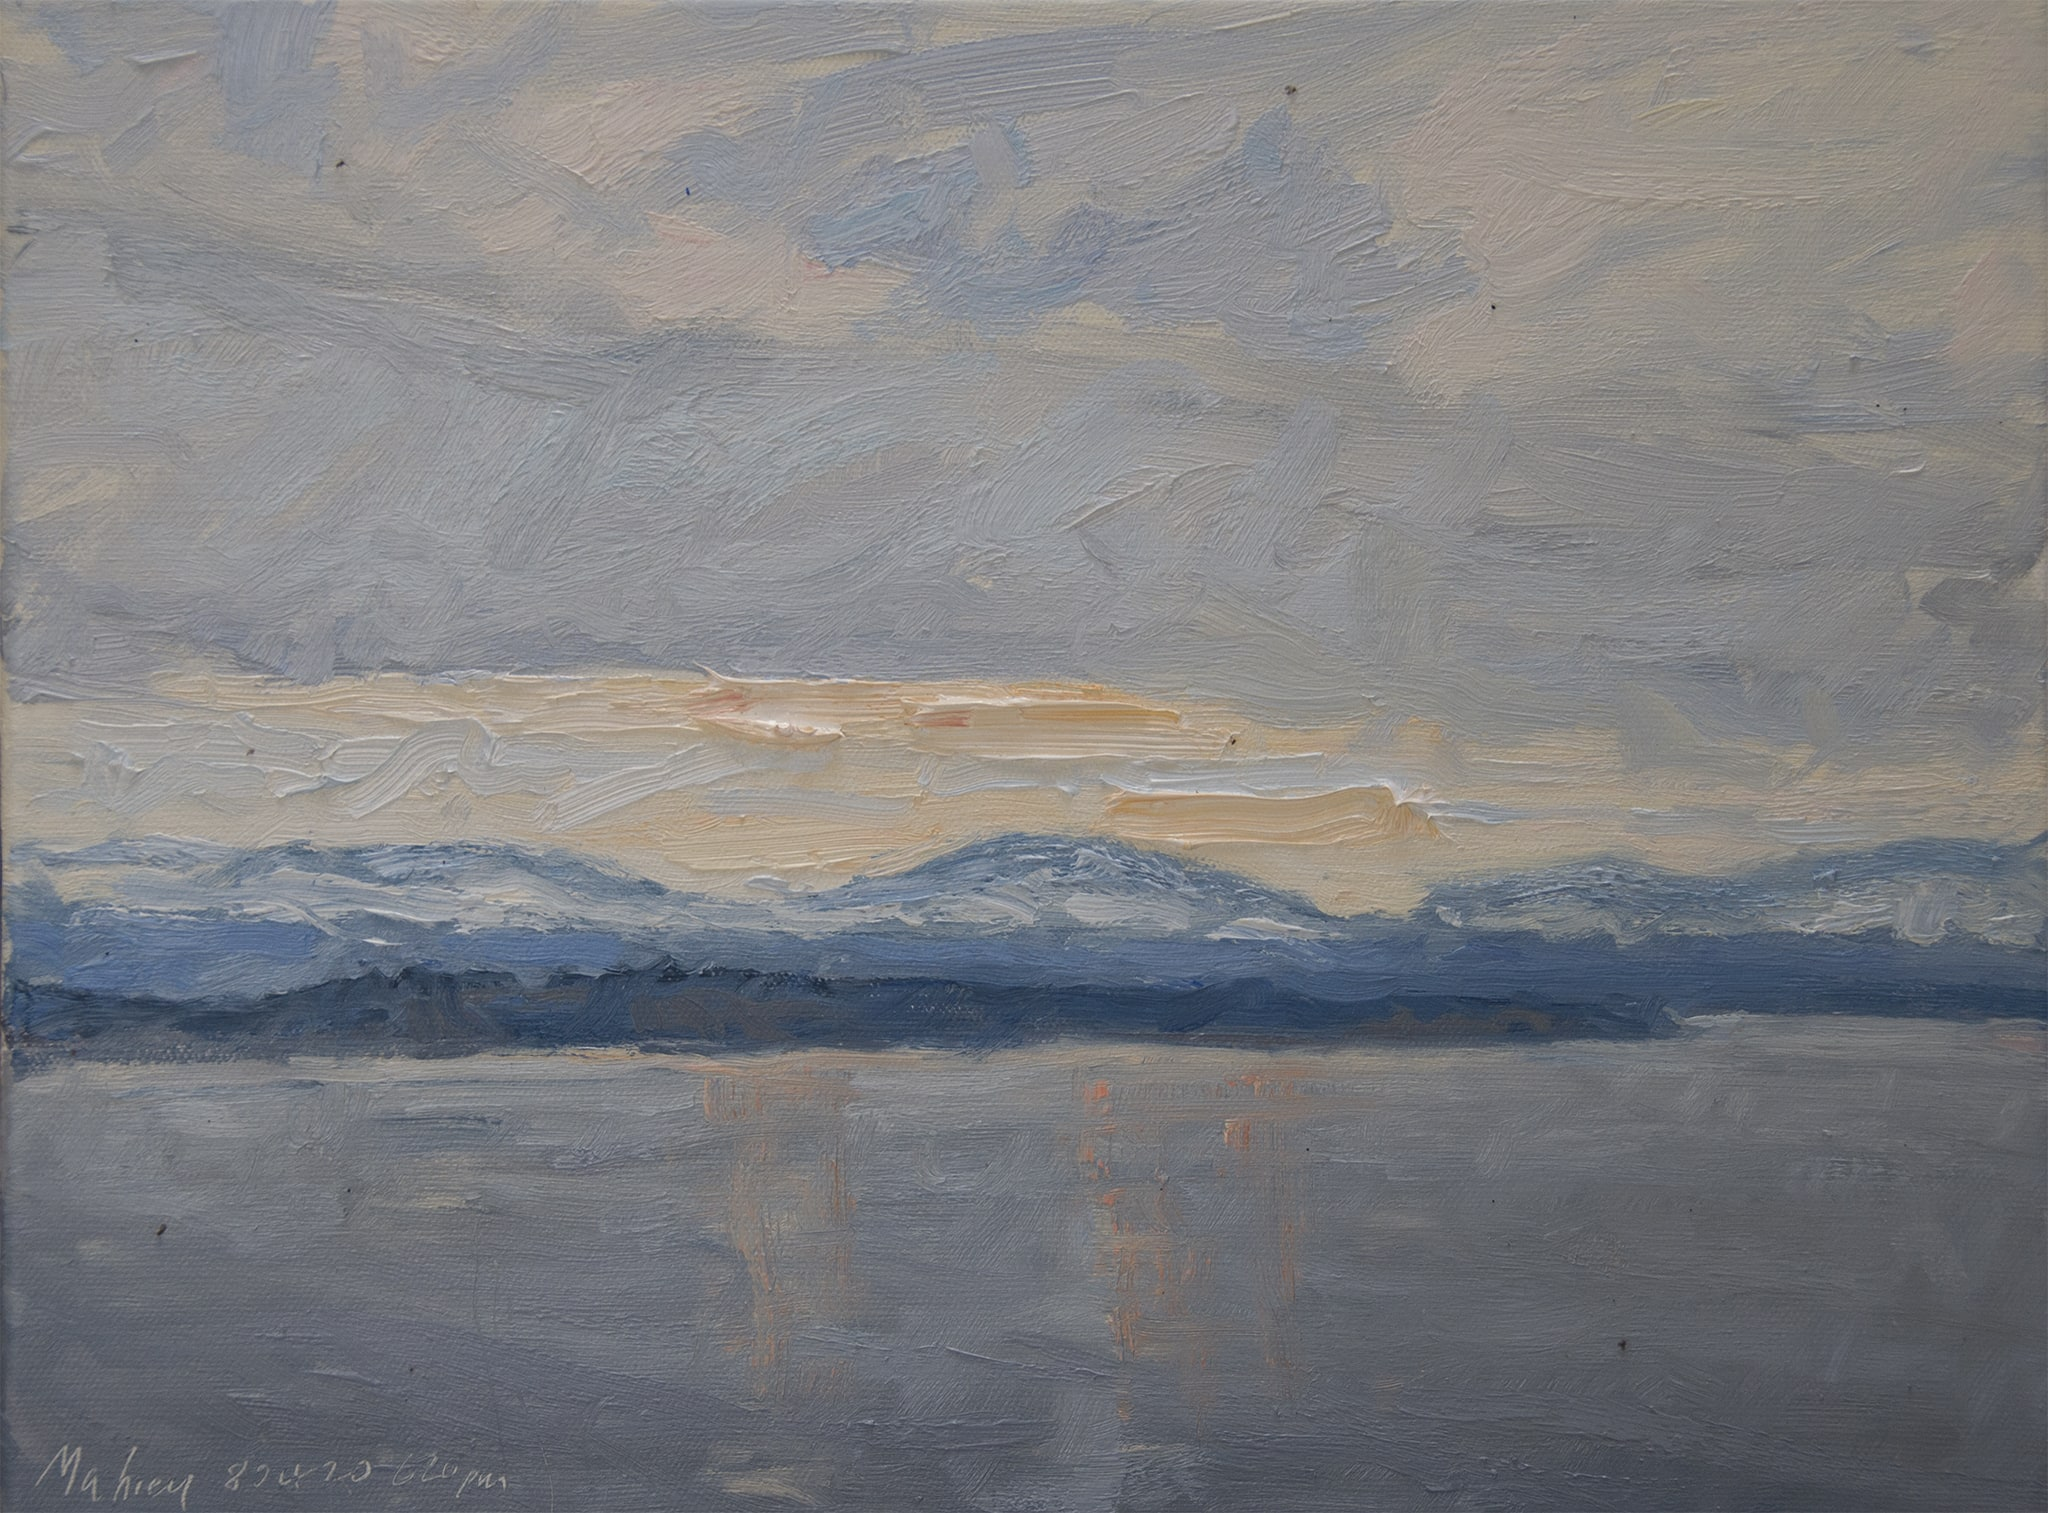 Low Cloud Deck—Olympic View at Sunset